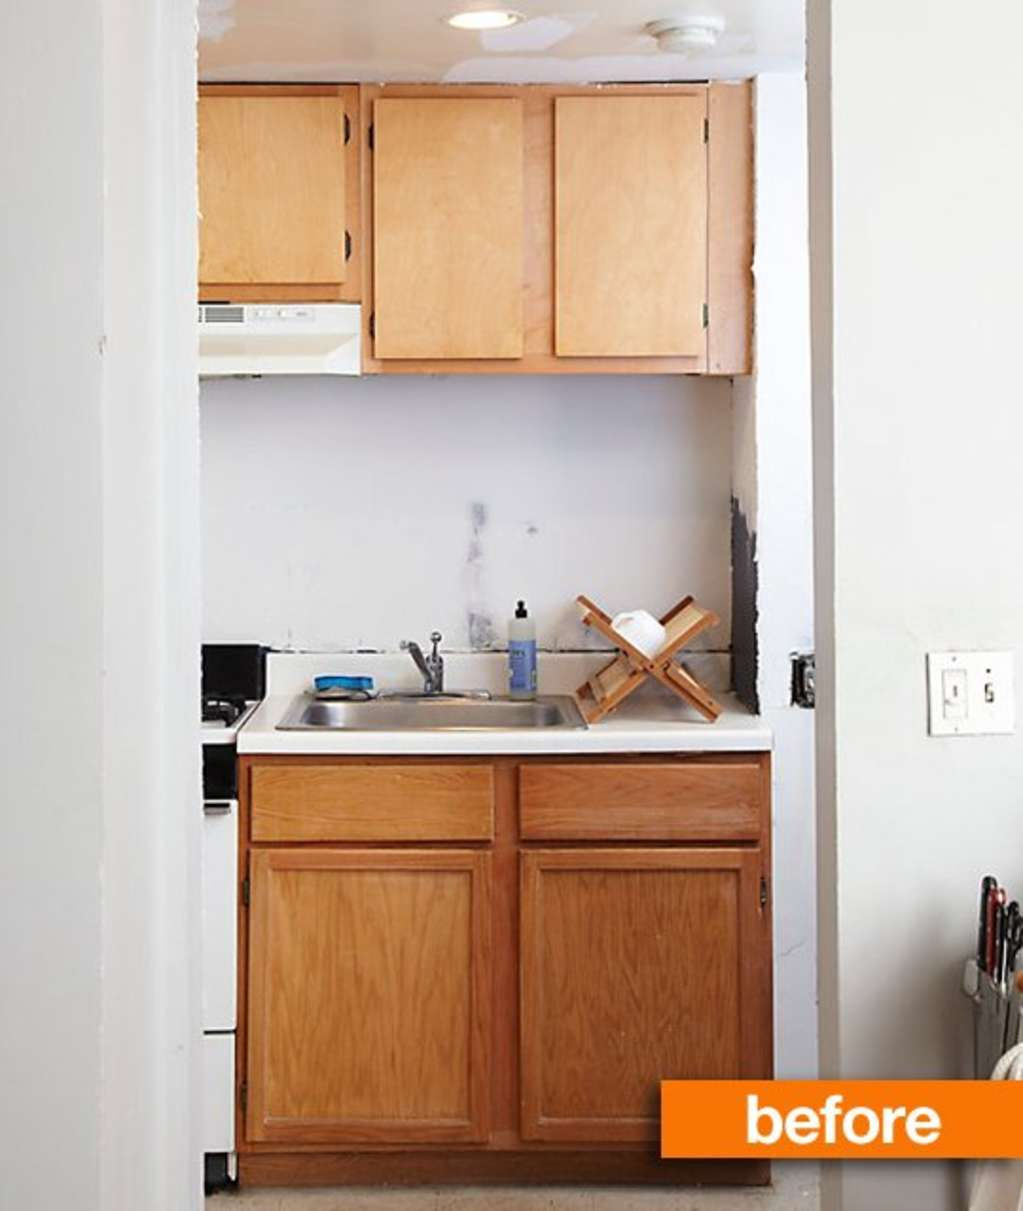 Kitchen Renovation Apartment Therapy: Before & After: A Seriously Stylish Kitchen Renovation On